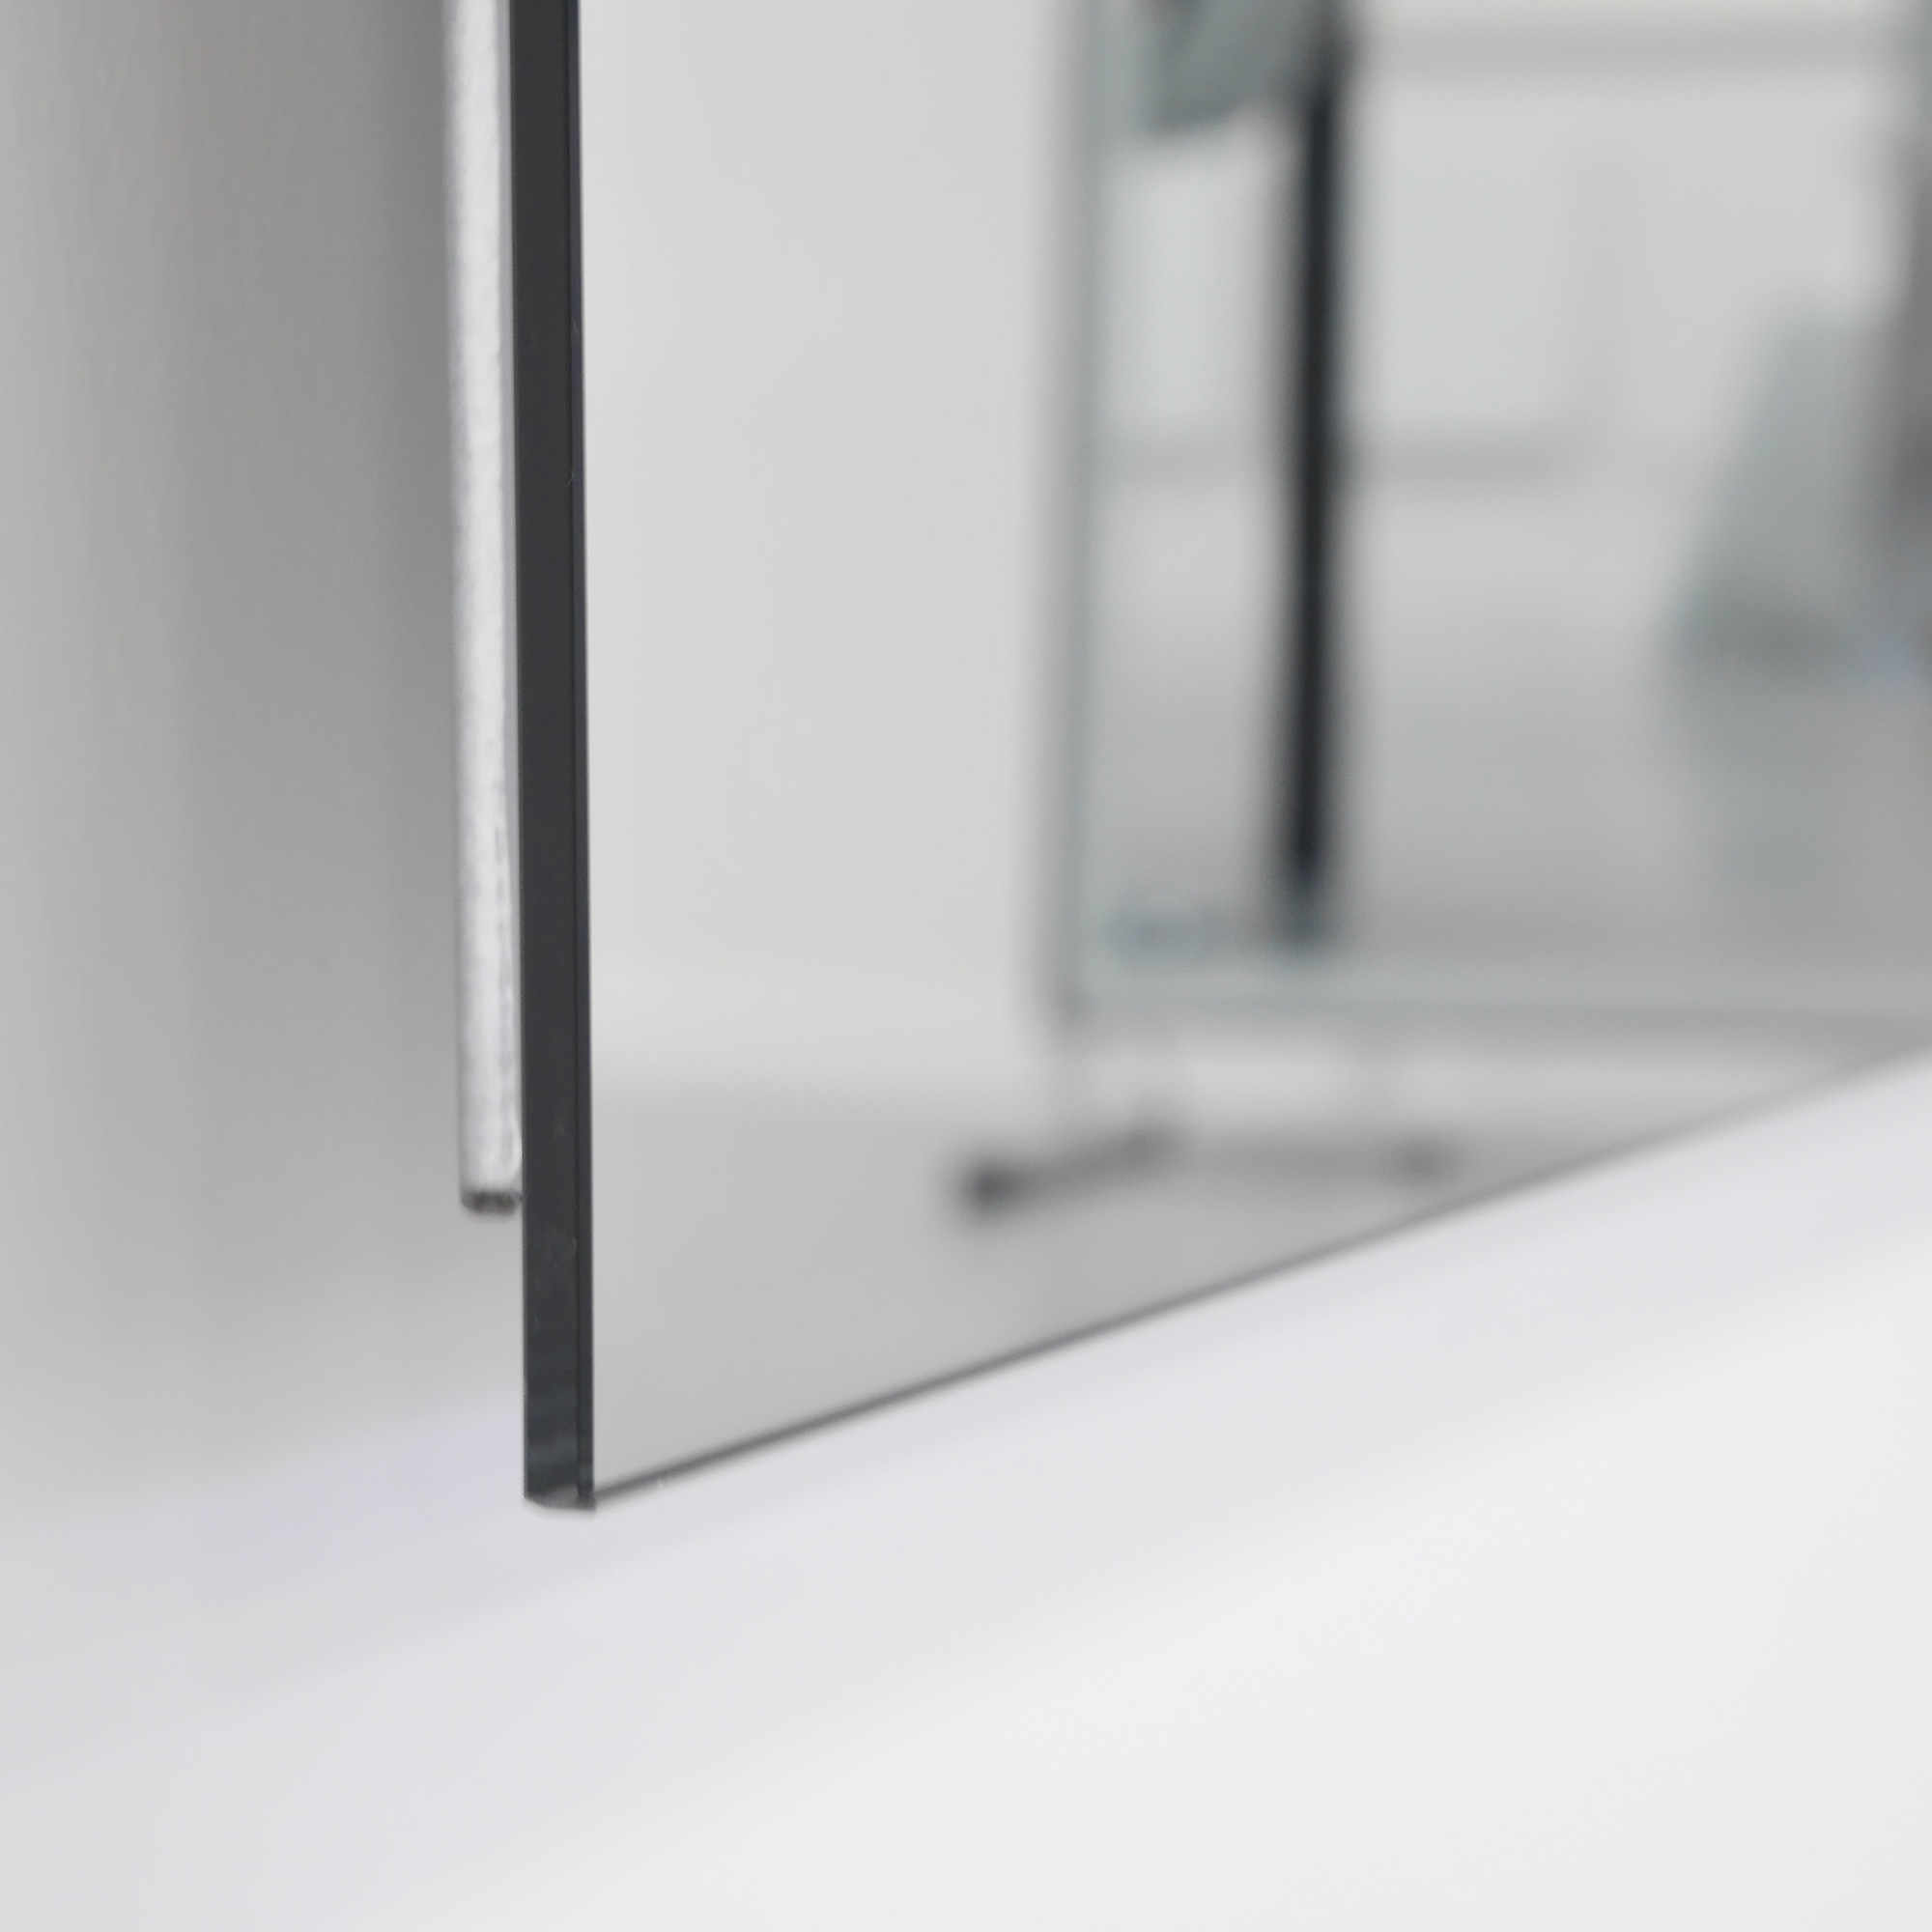 mirror heater with hidden carbon technology